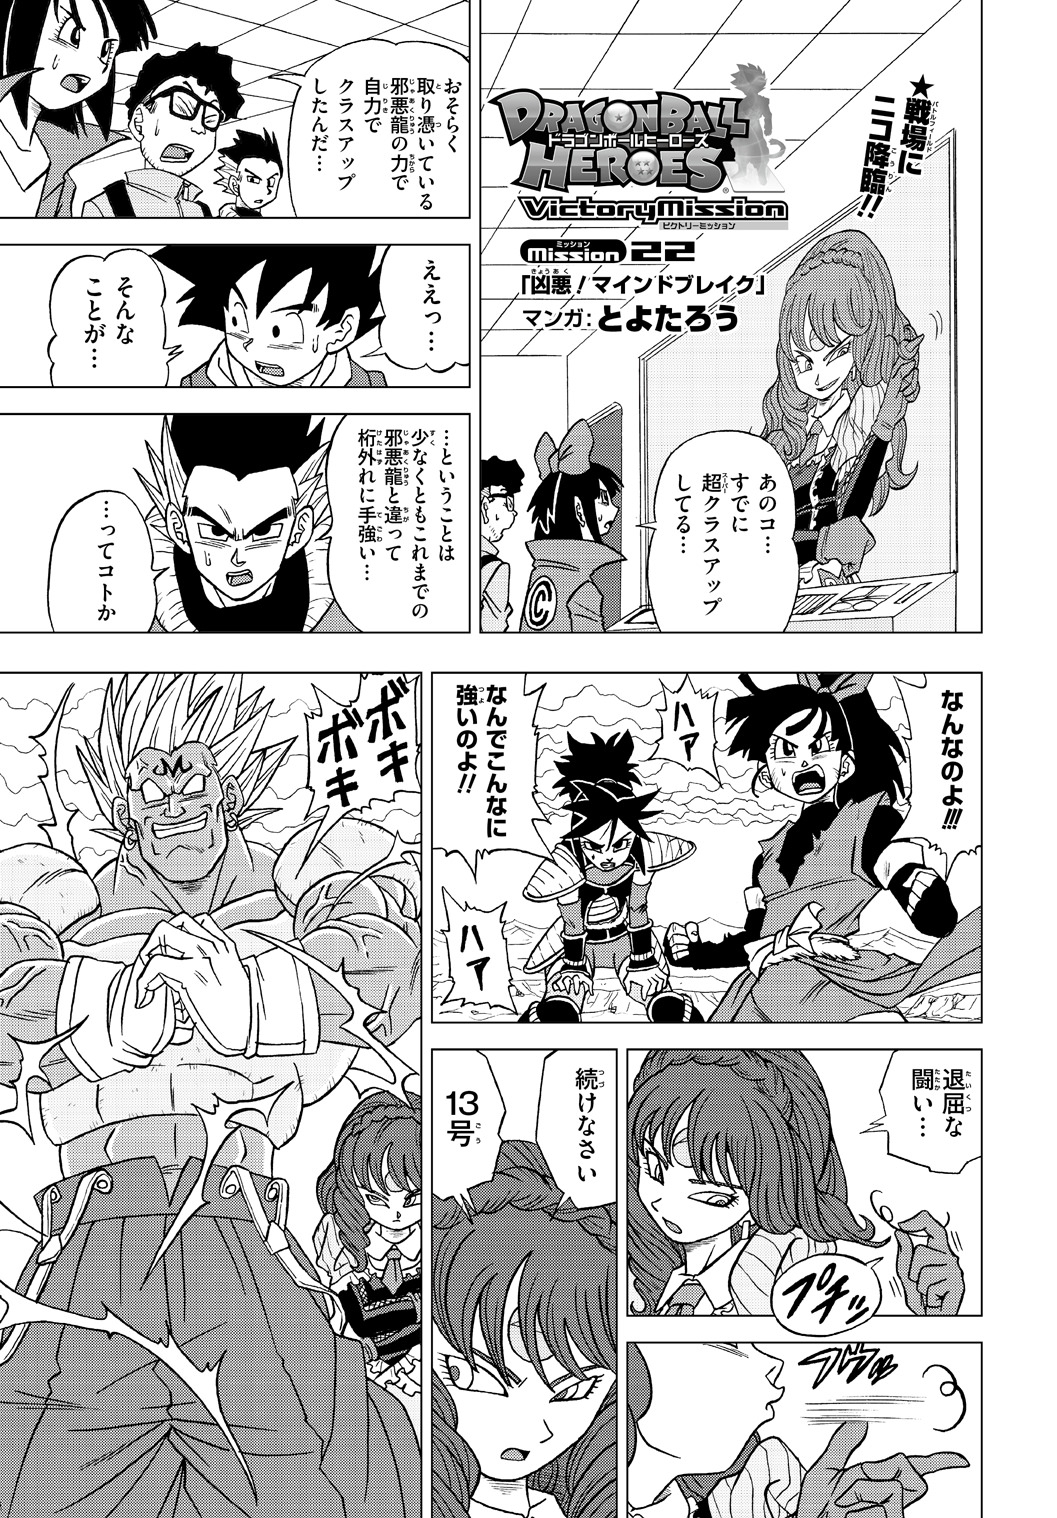 Dragon Ball Heroes Victory Mission Chapitre 022